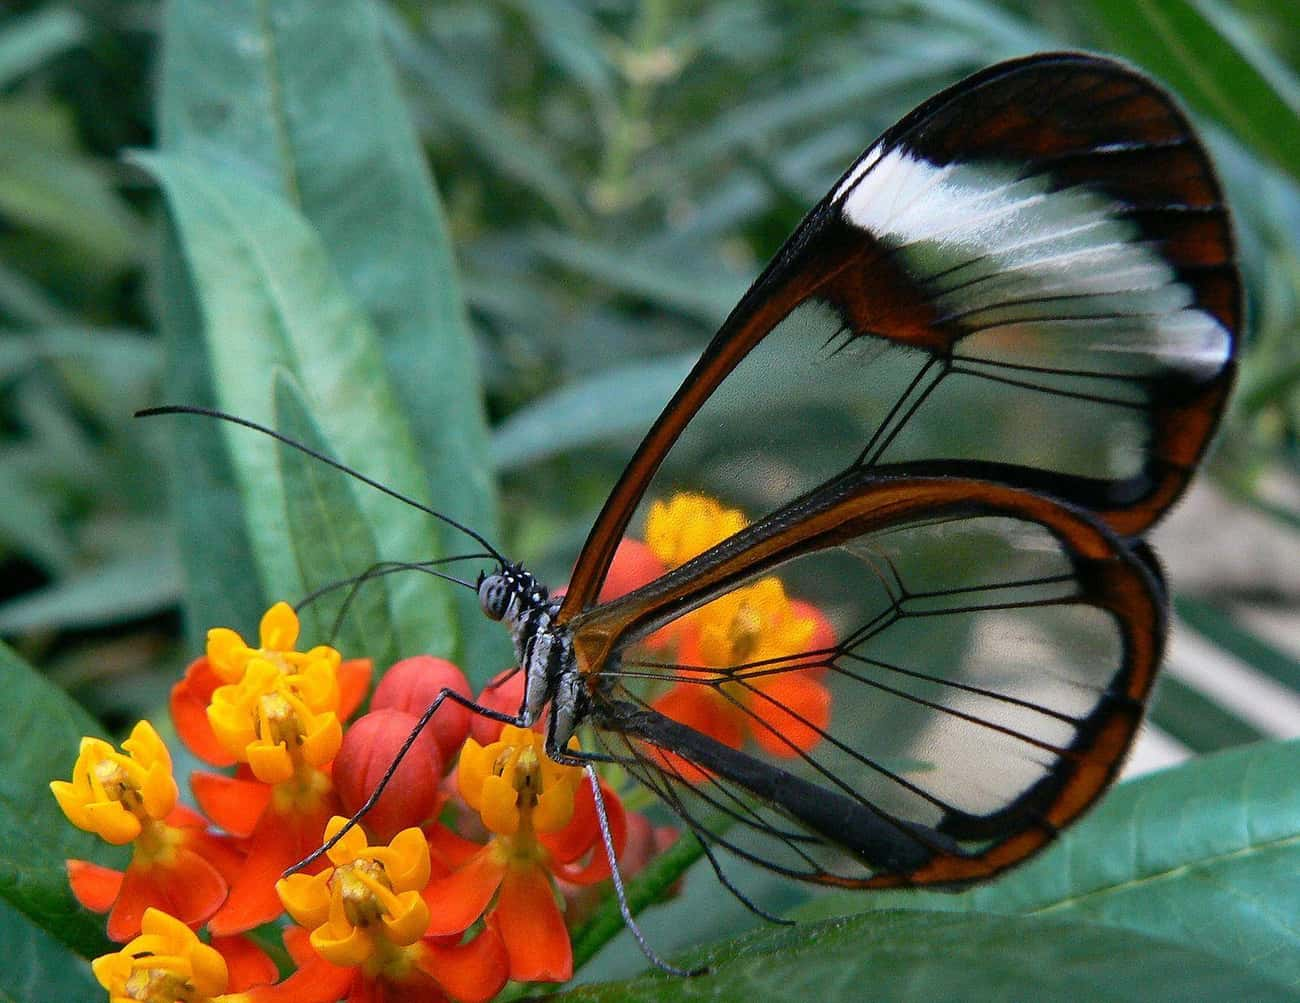 The Glasswinged Butterfly Has  is listed (or ranked) 2 on the list 10 Real Transparent Animals That Let You Take a Peek at Their Insides